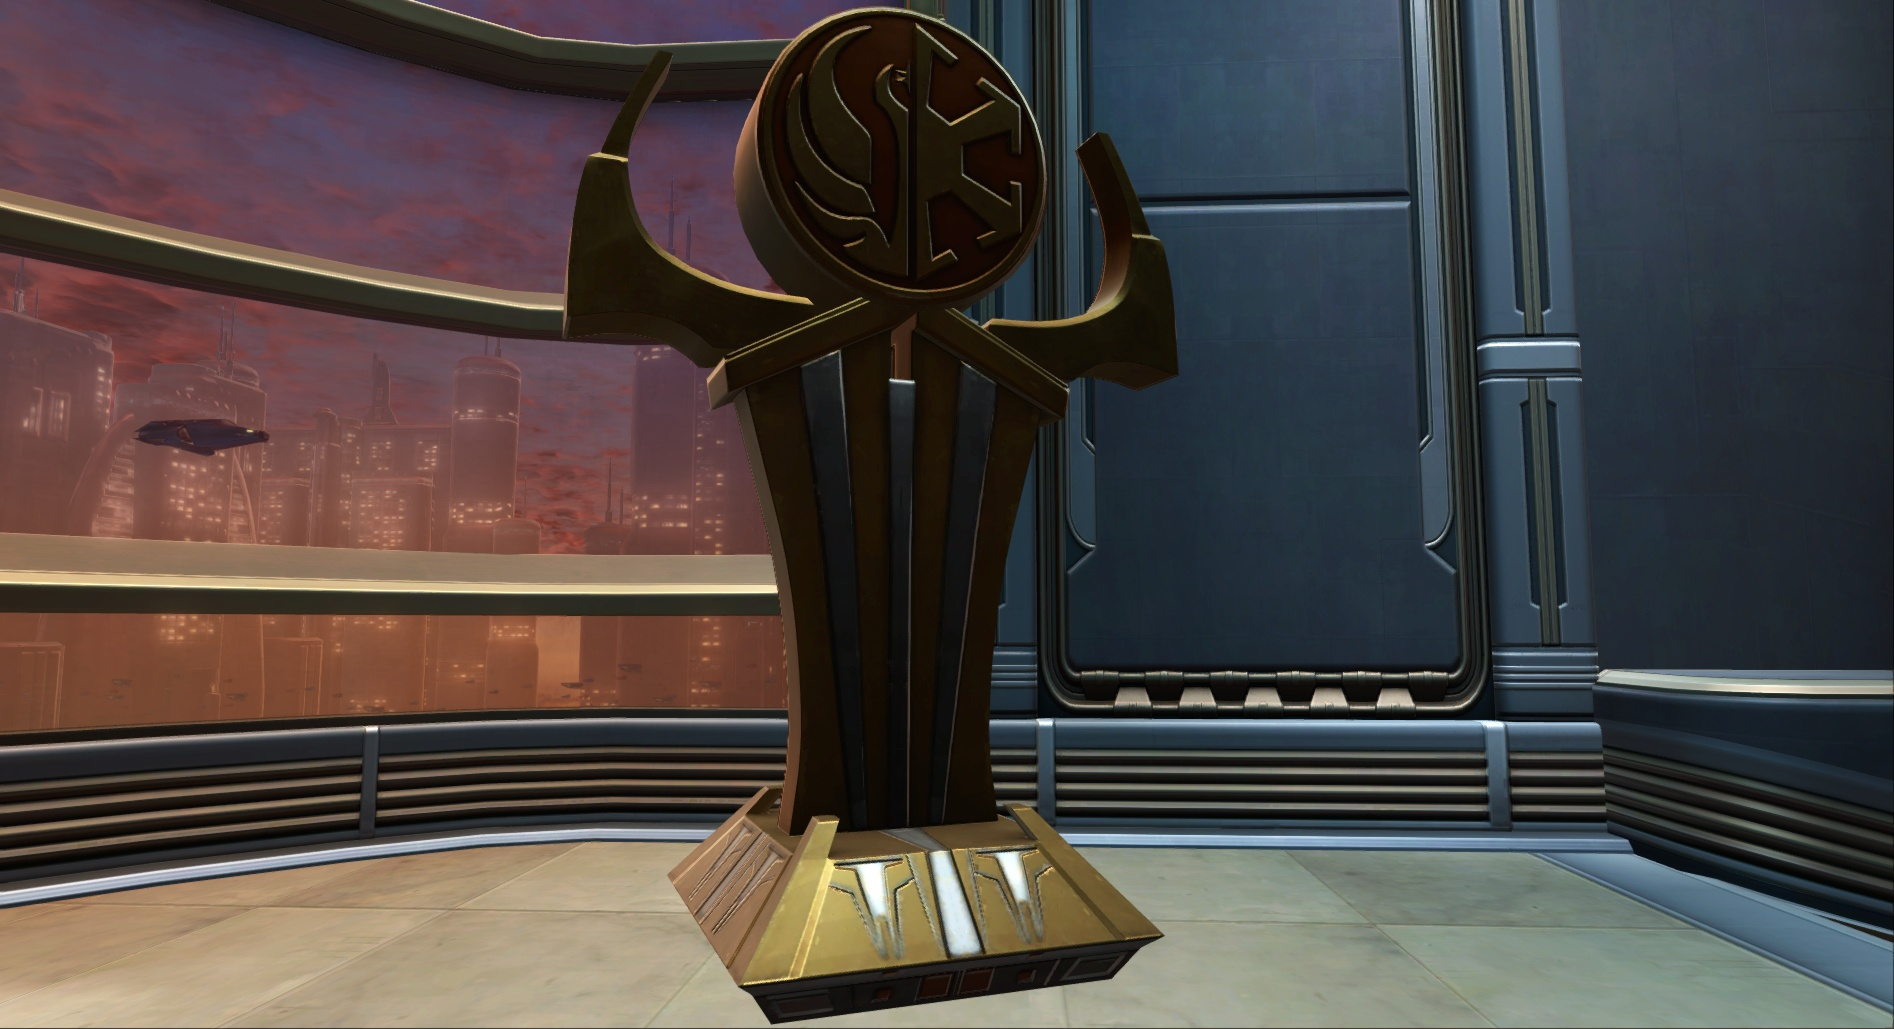 Galactic Alliance Statue